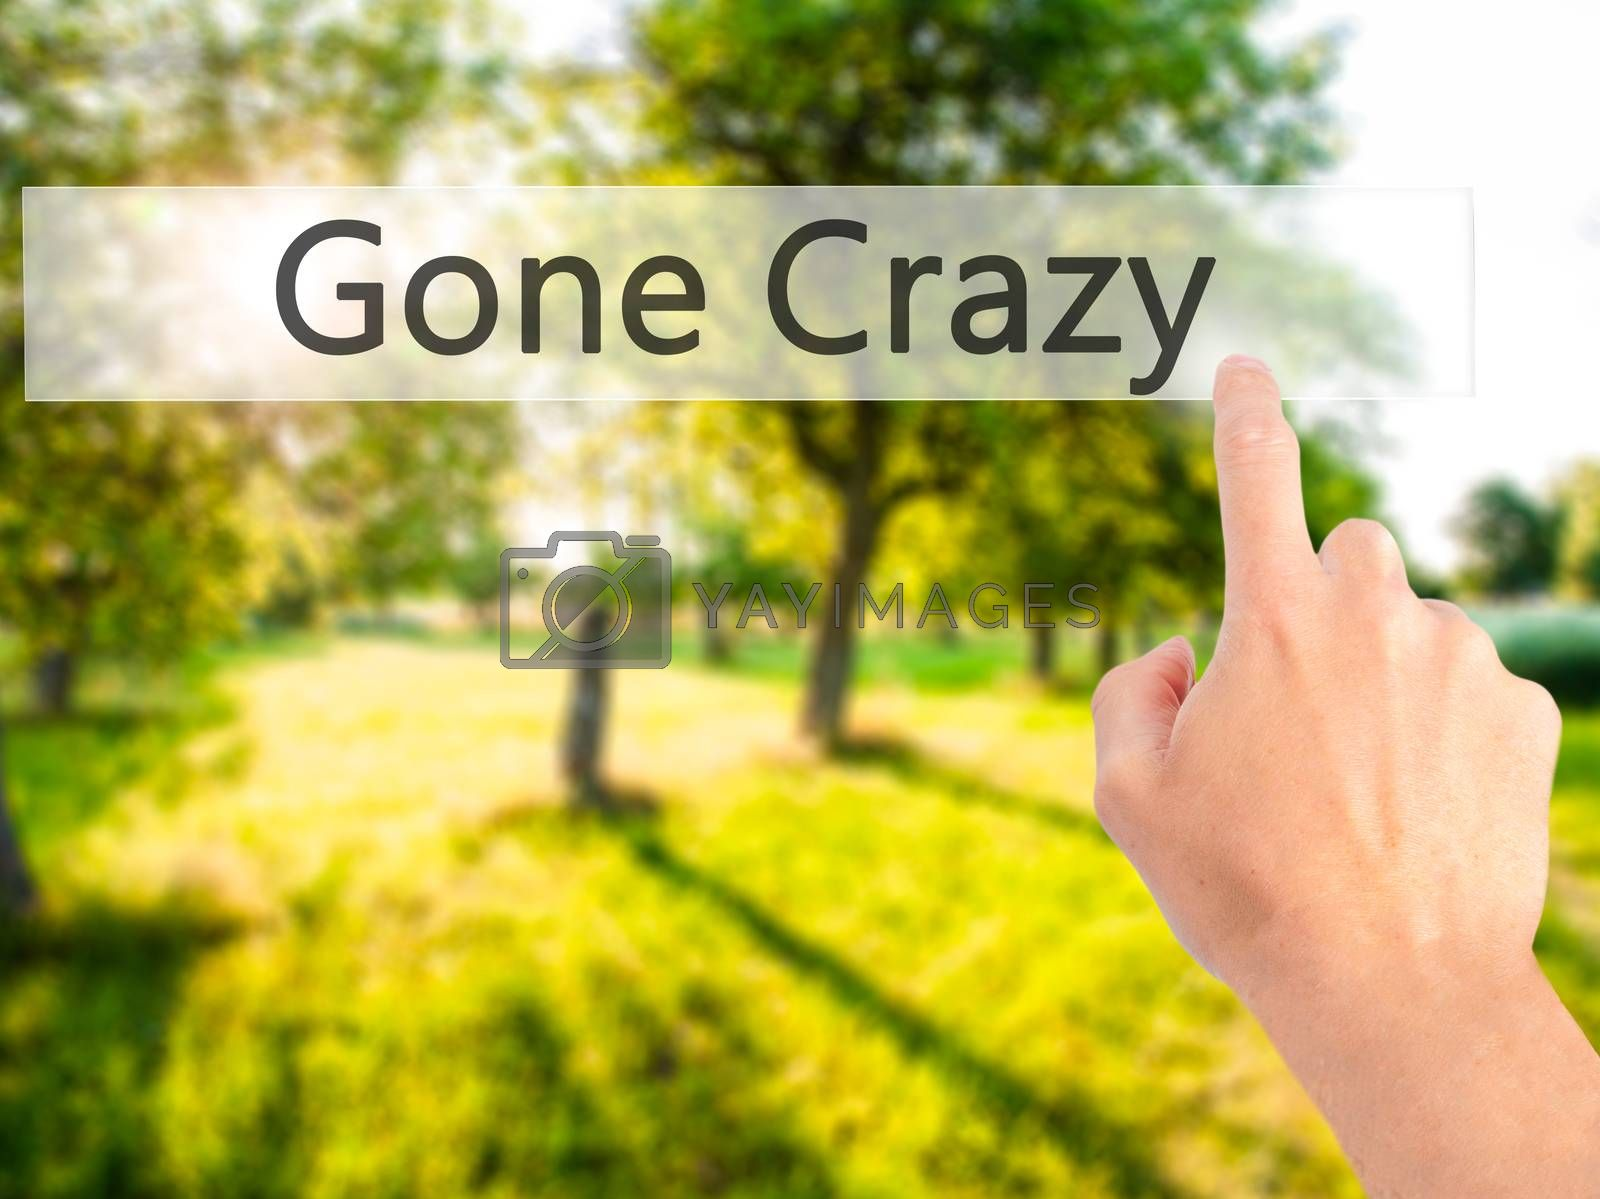 Gone Crazy - Hand pressing a button on blurred background concep by jackald